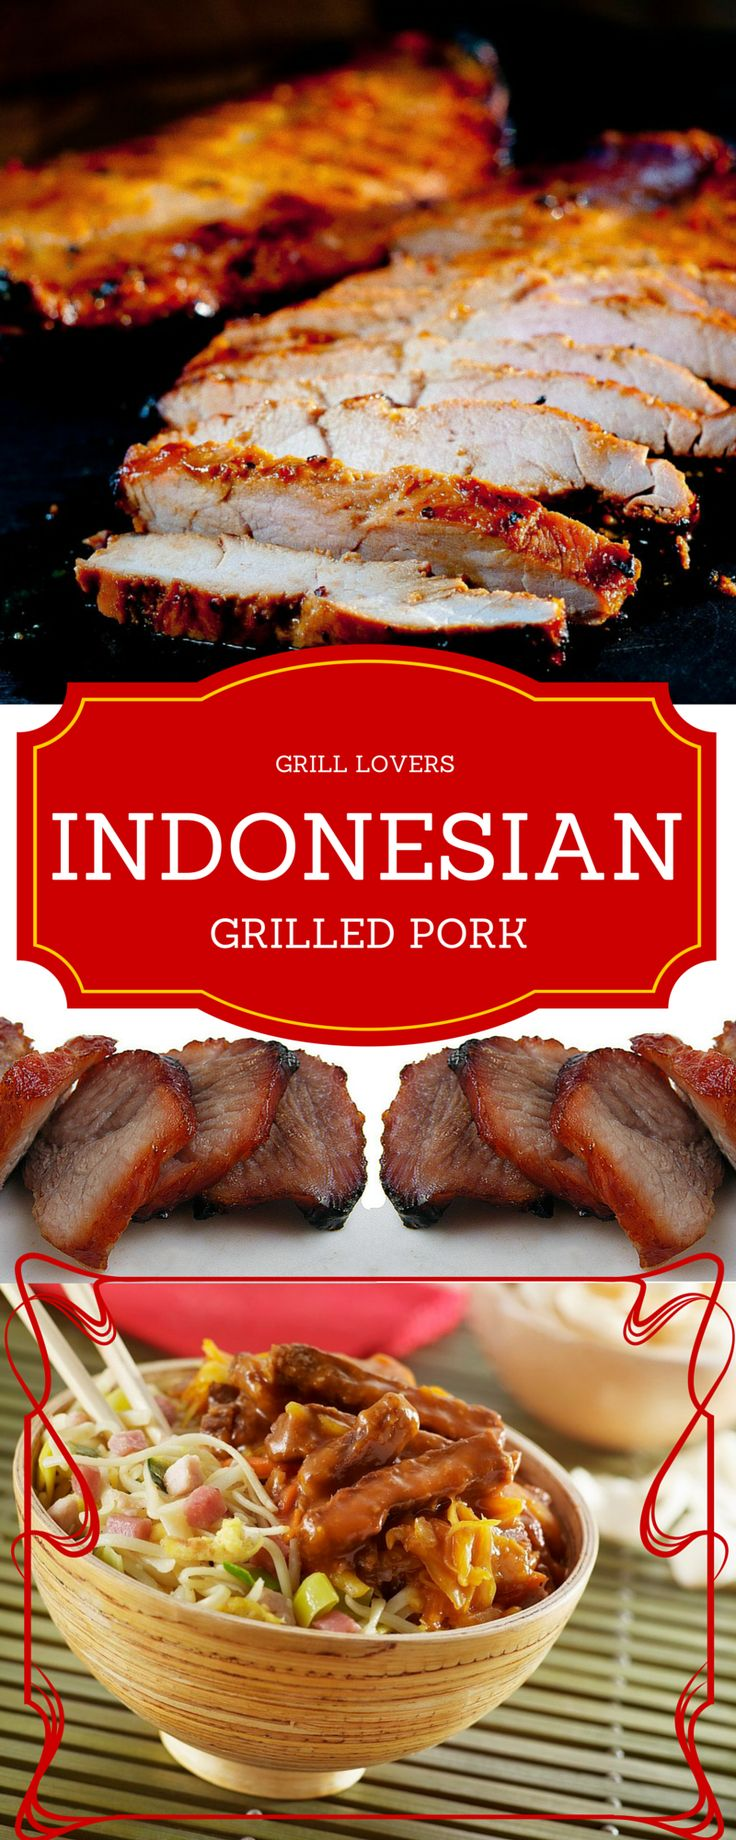 Grill Lovers' Amazing Indonesian Grilled Pork Recipe #recipes #foodporn #foodie #grilling